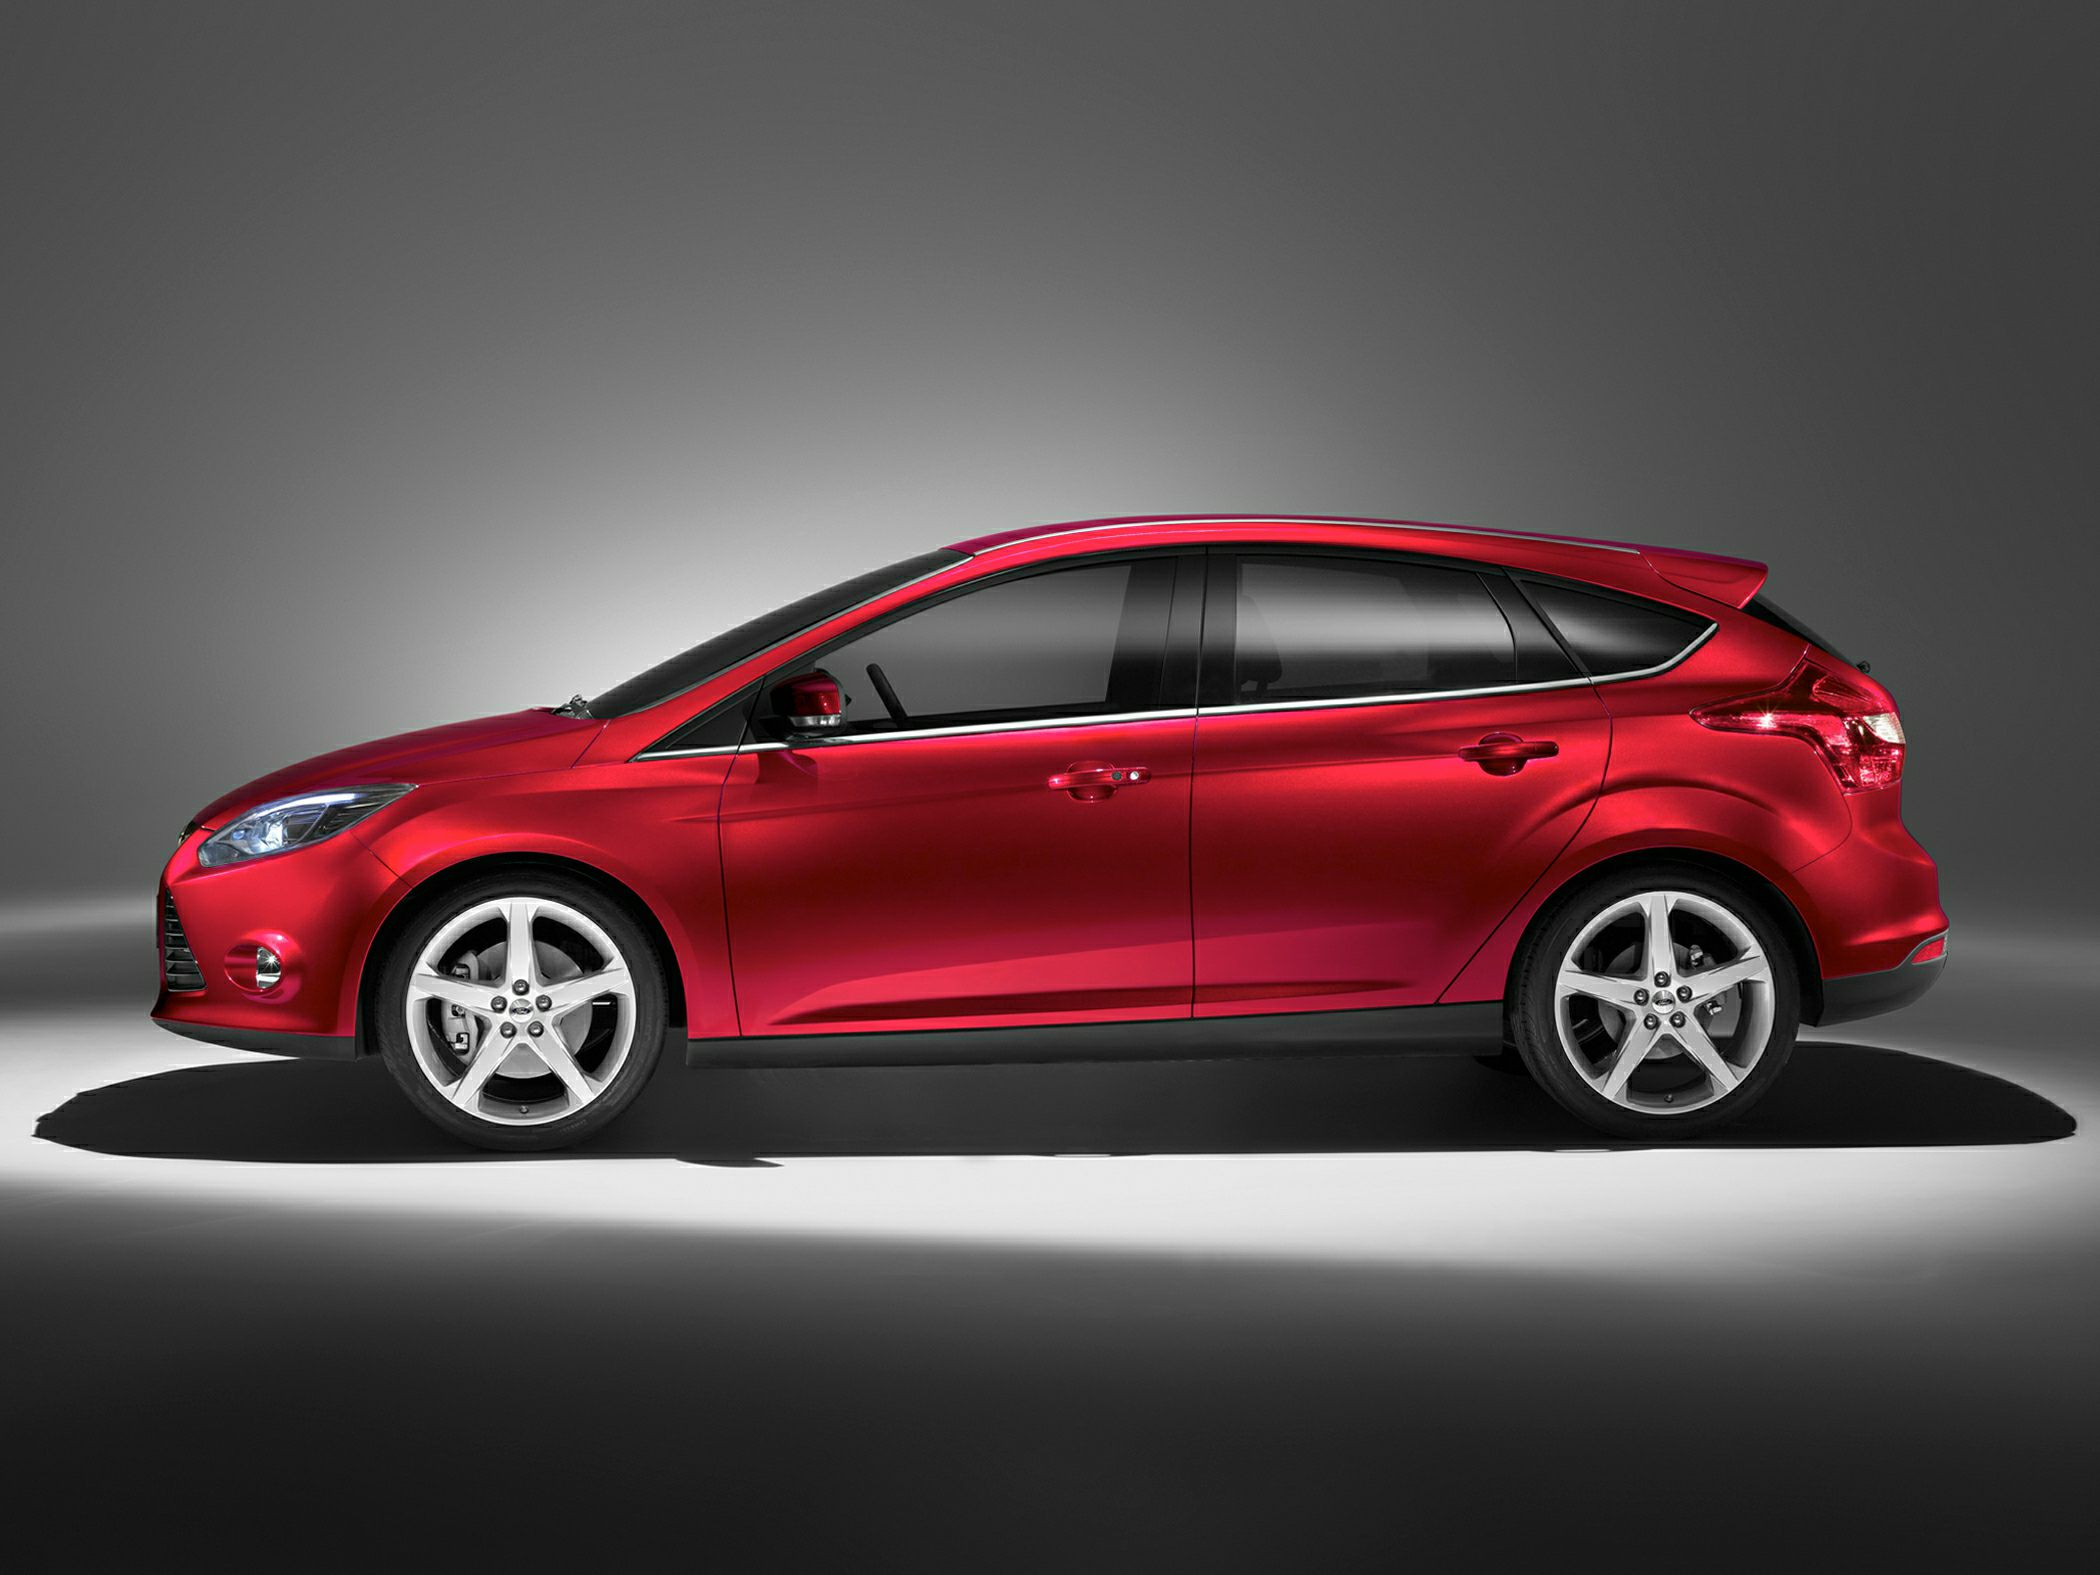 ford focus ii coupe 2012 wallpaper